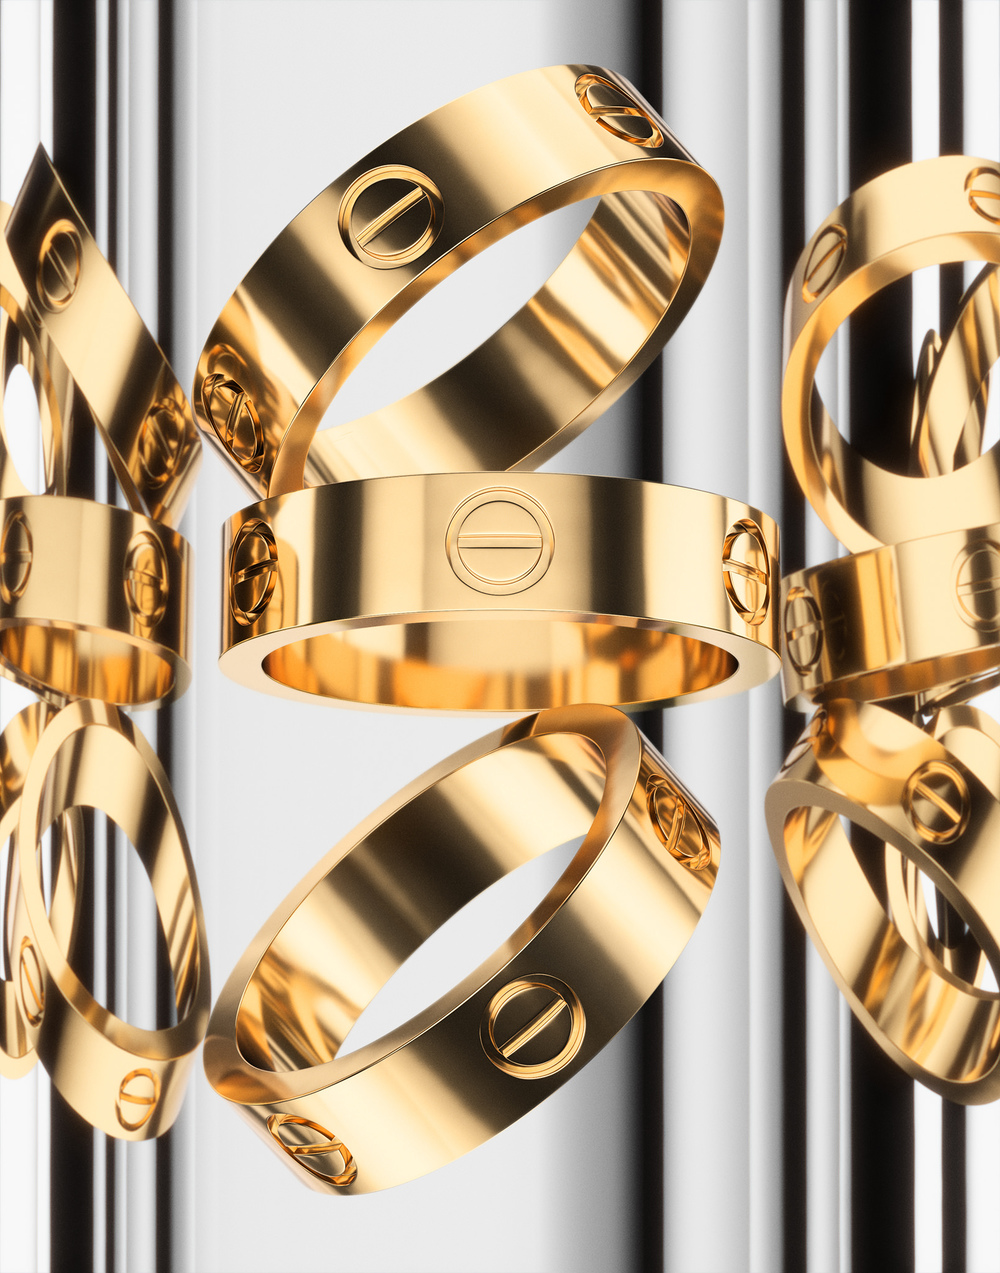 001Cartier_Love_Ring.jpg